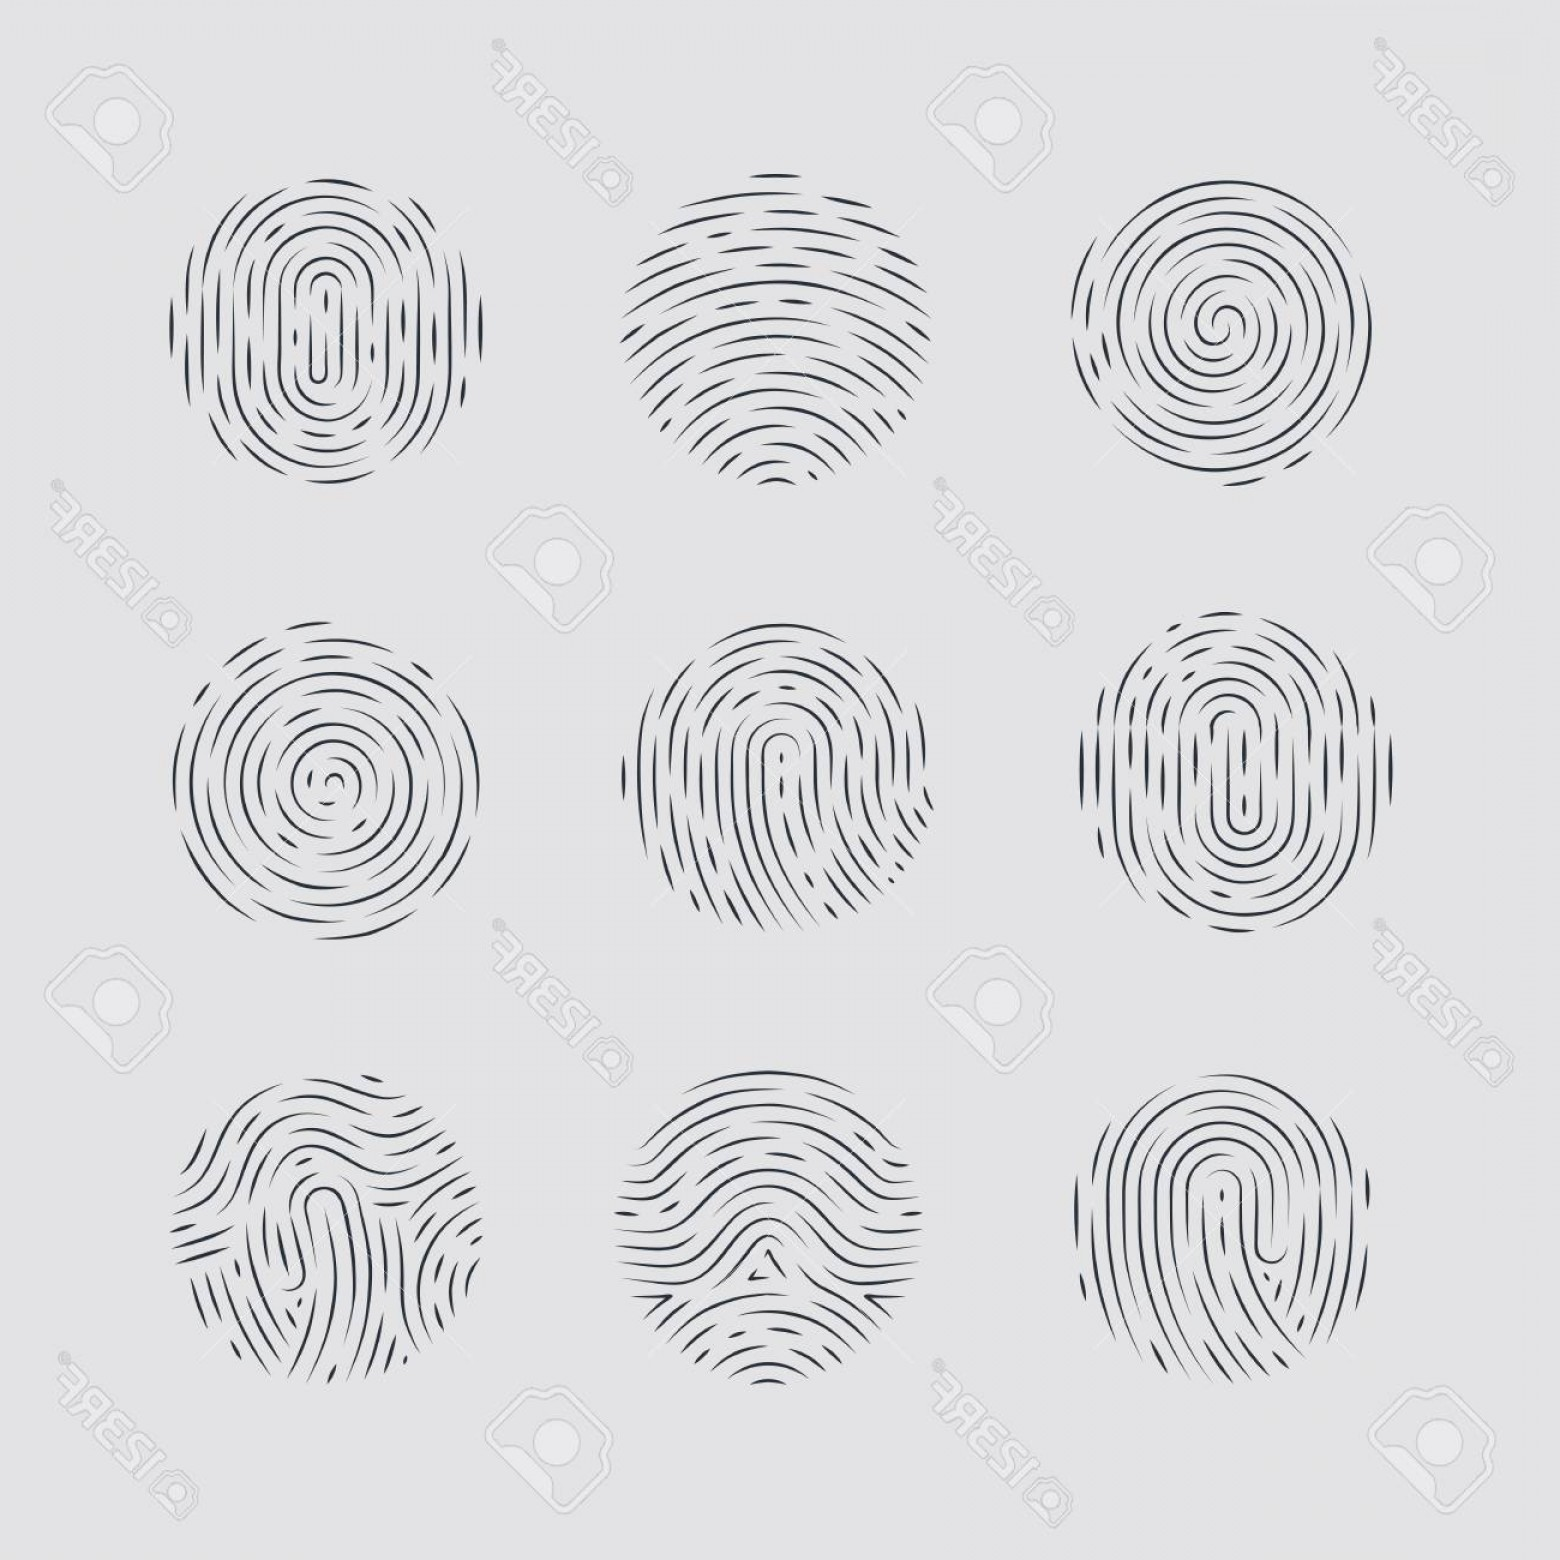 Security Vector Patterns: Photostock Vector Abstract Round Fingerprint Patterns Detailed For Identity Person Security Id On Gray Background